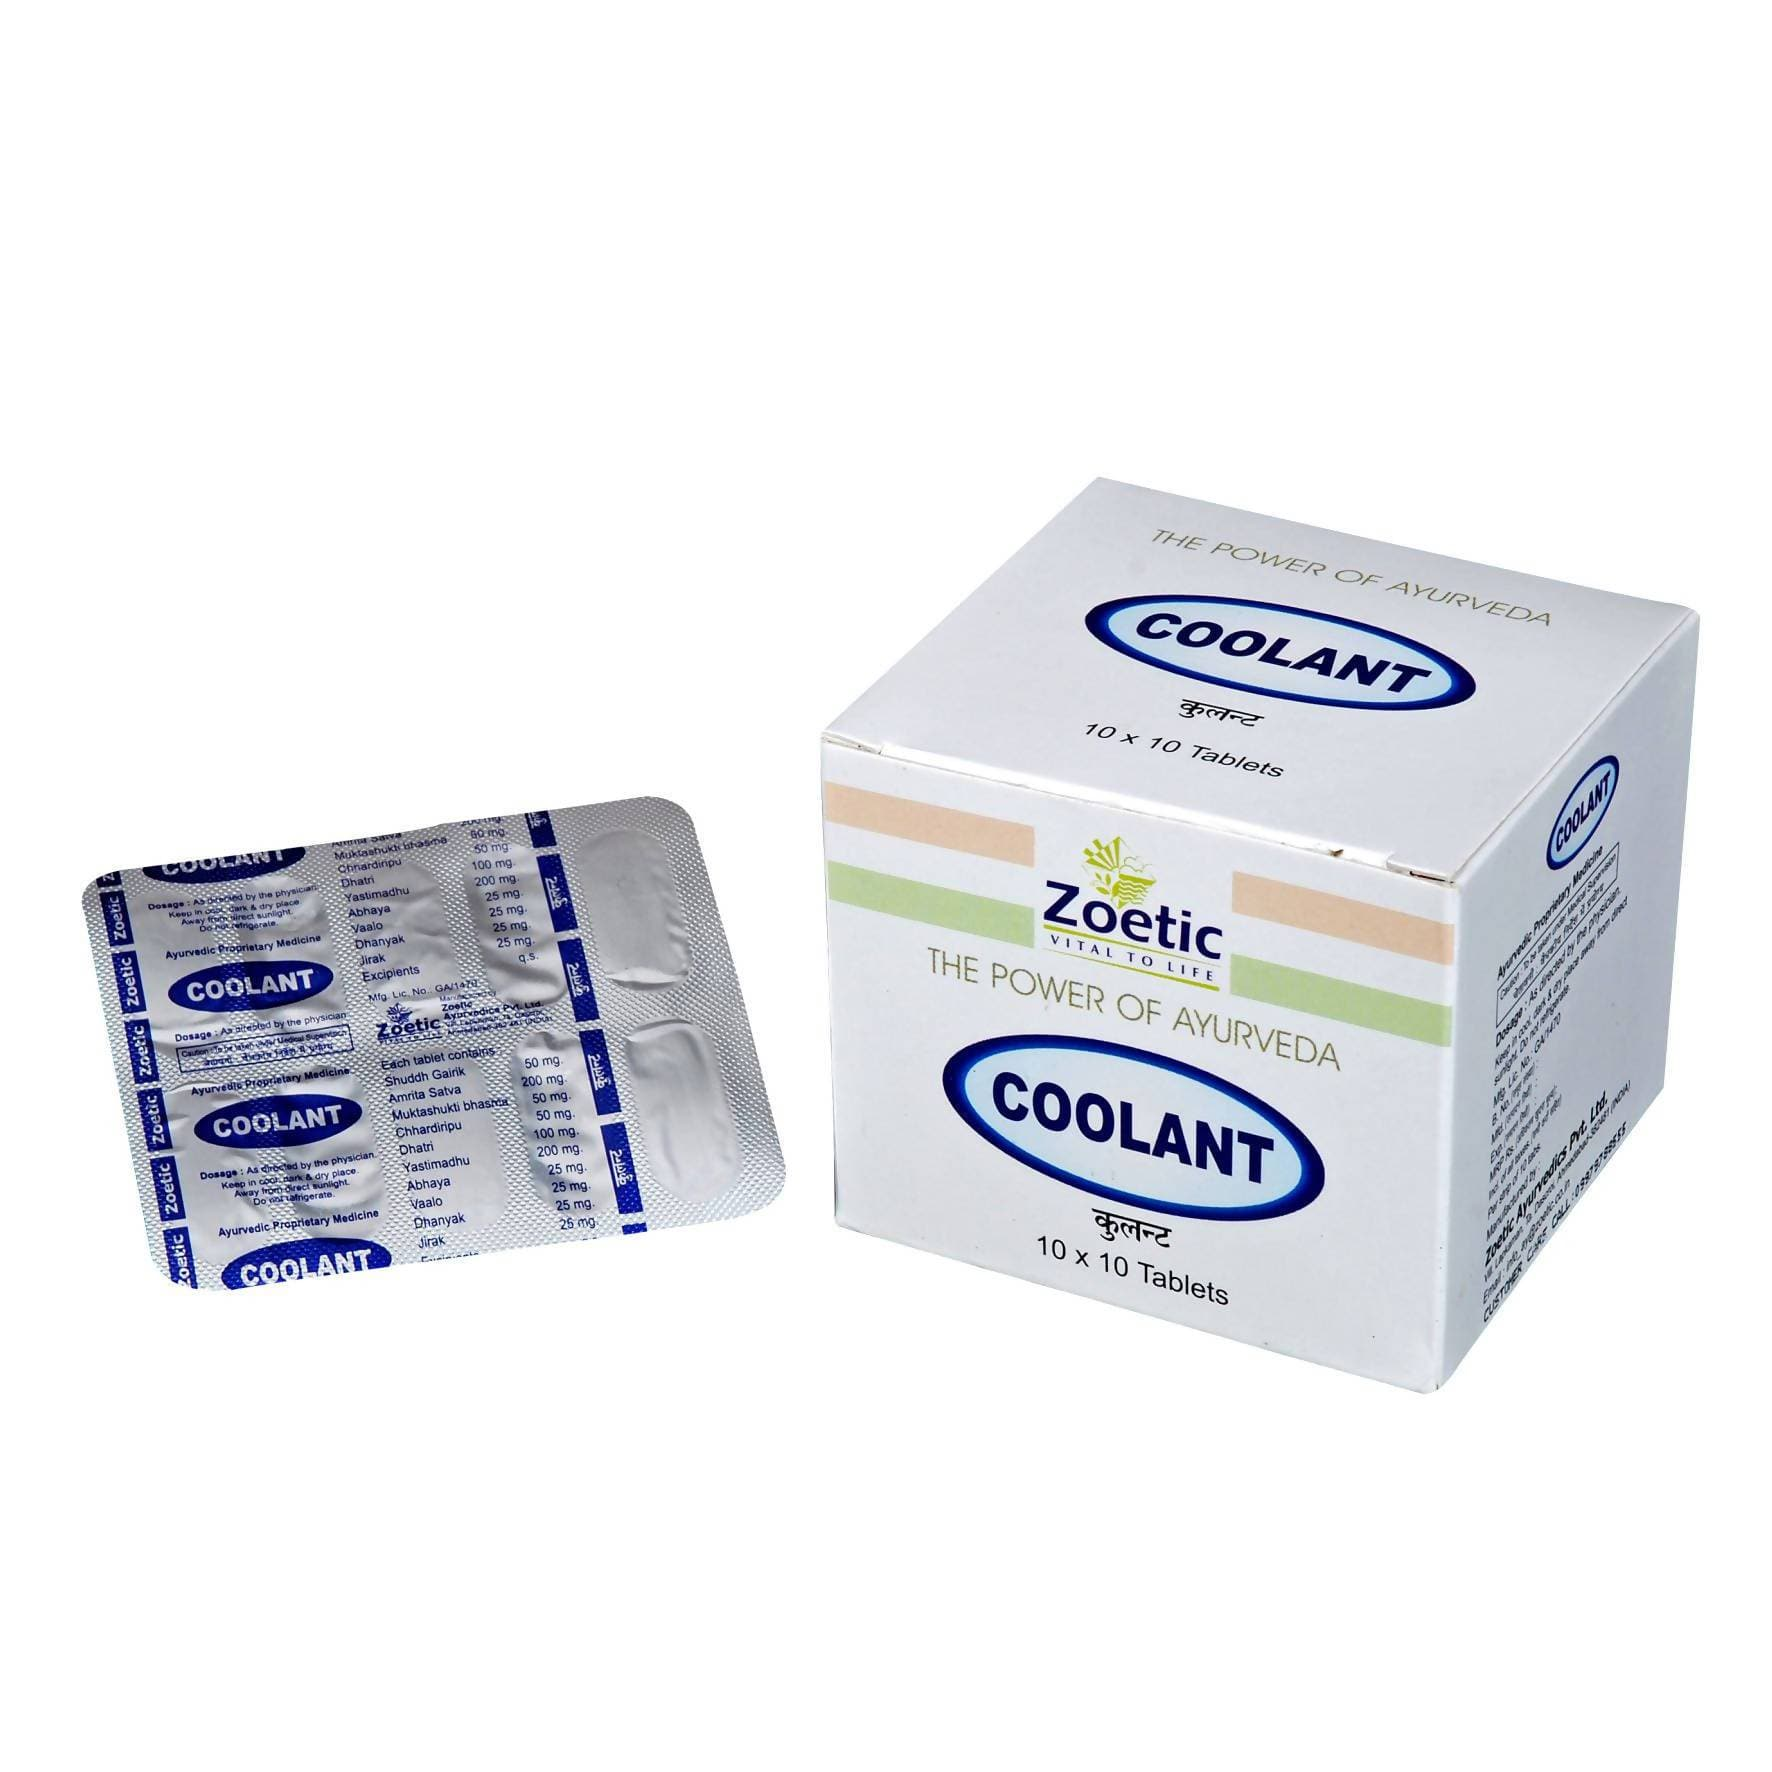 Zeotic Ayurveda Coolant Tablet